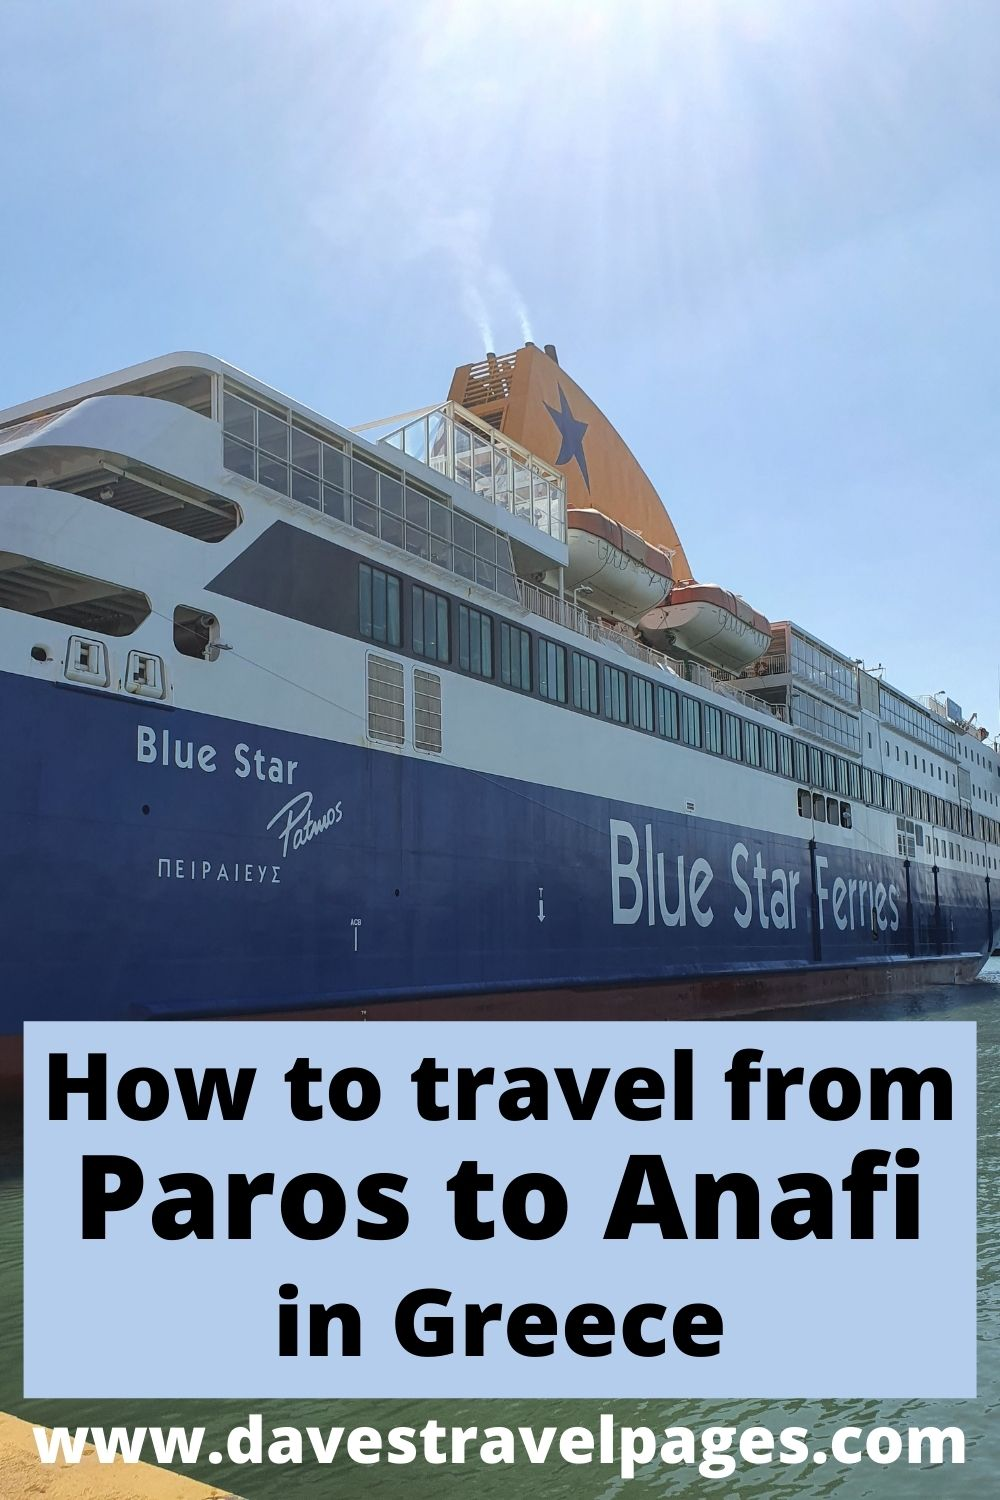 How to travel from Paros to Anafi island in Greece